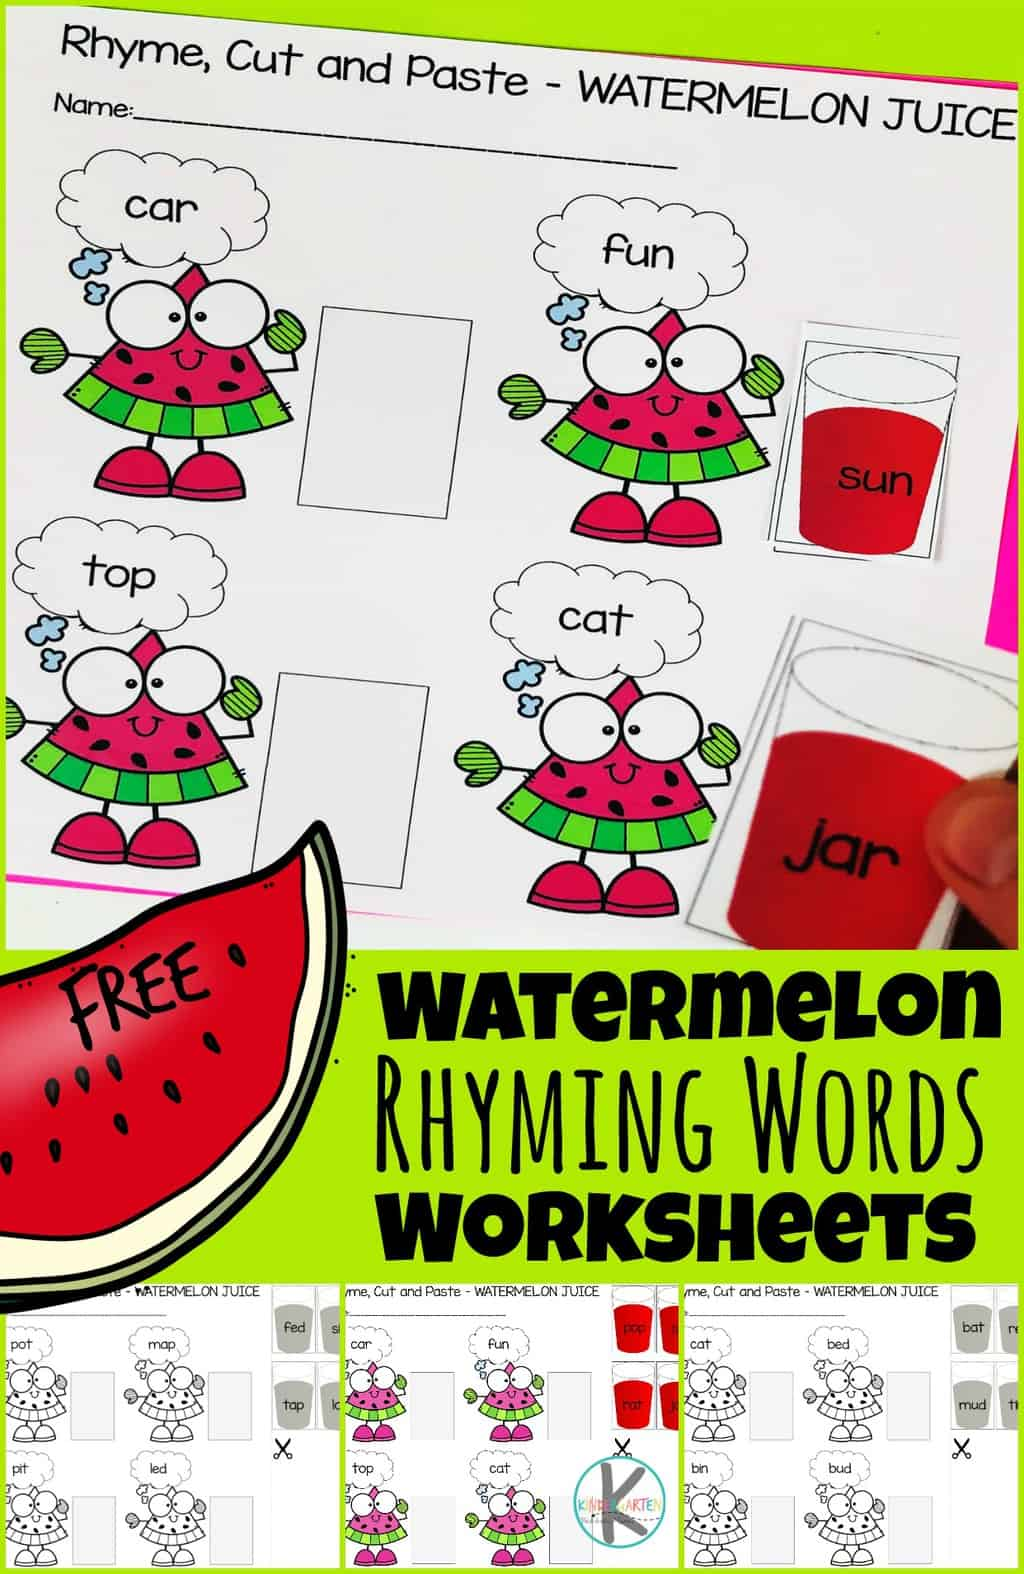 Free Watermelon Rhyming Words Worksheets